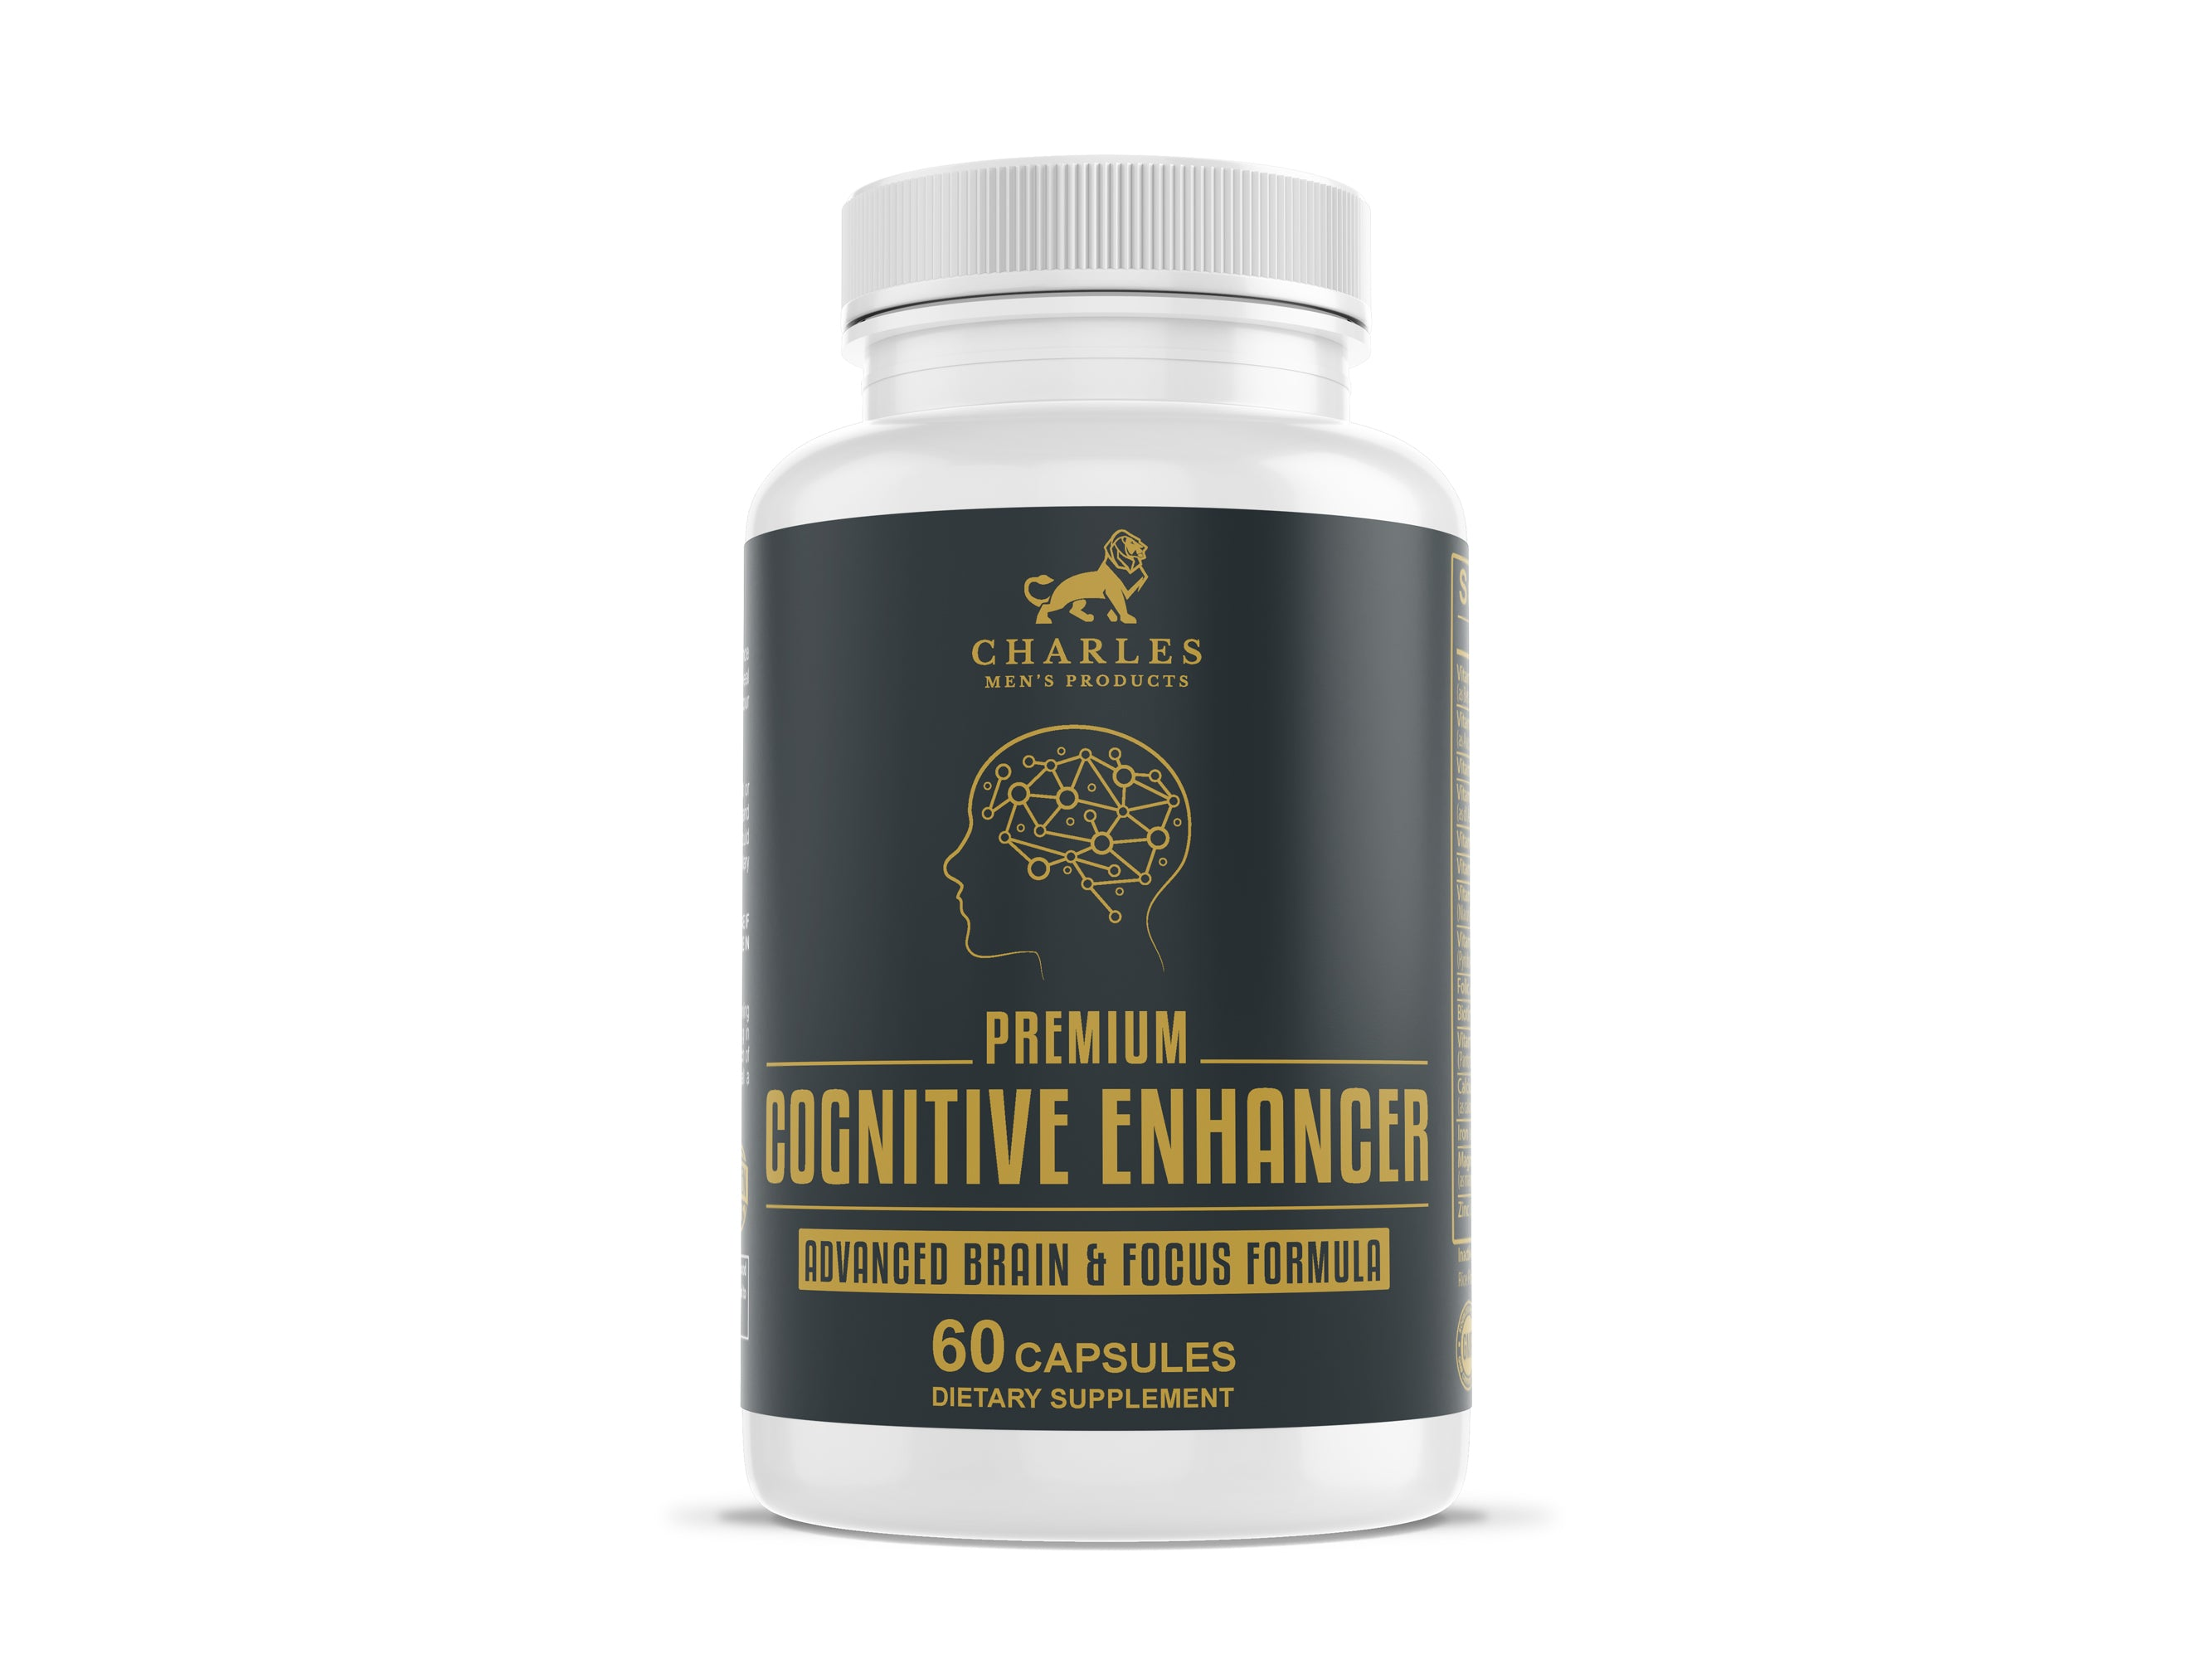 60 capsules, one month supply of Cognitive Enhancer. The intended benefits of this supplement include The intended benefits of this supplement include to improve mood, boost memory function, increase physical energy, improve mental clarity, promote concentration, boost level of alertness, and increase physical energy.